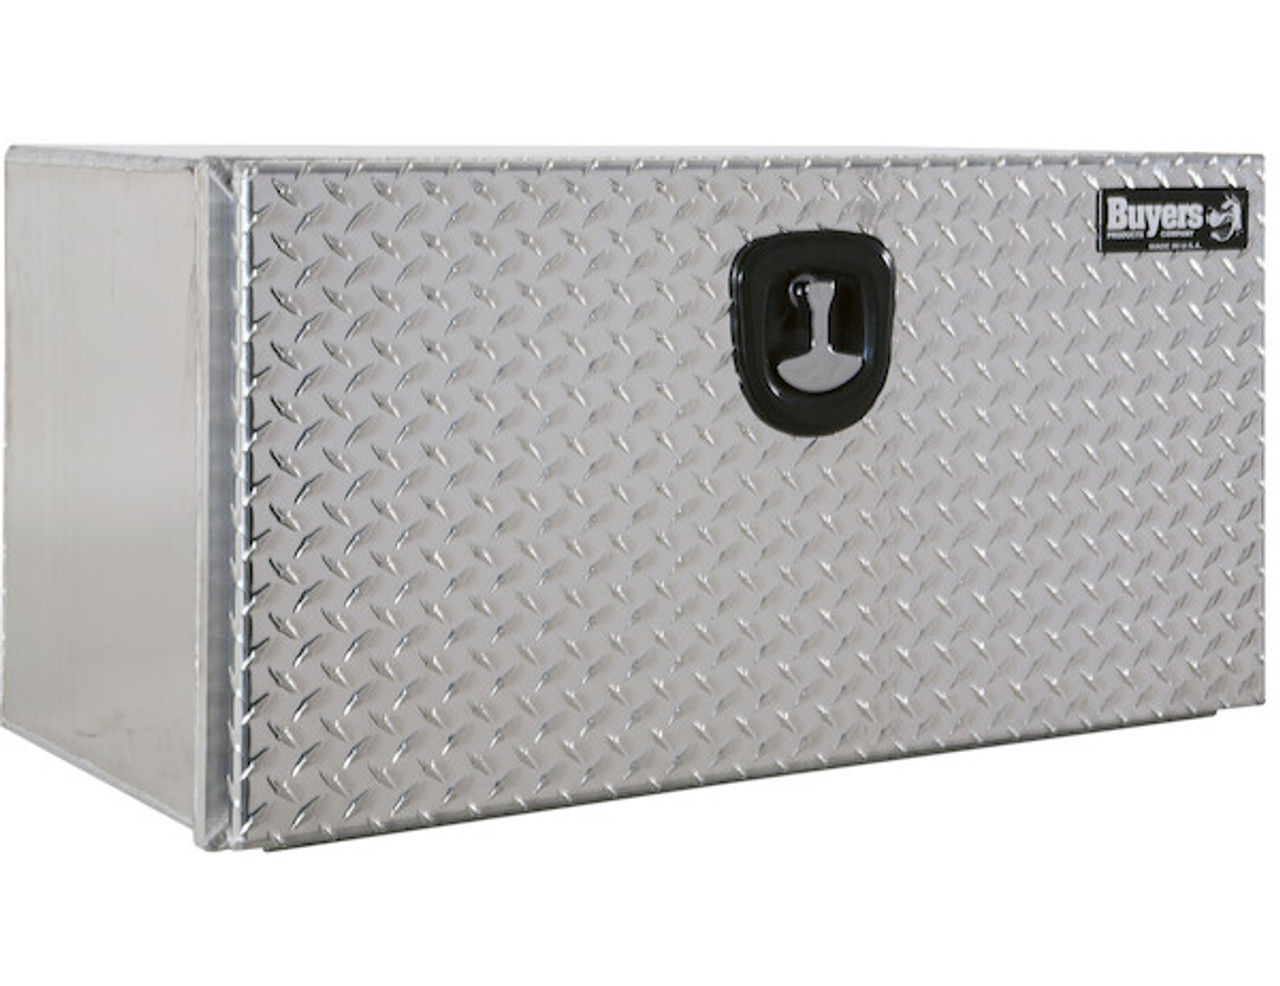 "1706500 BUYERS PRODUCTS XD SMOOTH ALUMINUM UNDERBODY TRUCK TOOLBOX WITH DIAMOND TREAD DOOR 18""HX18""DX24""W"